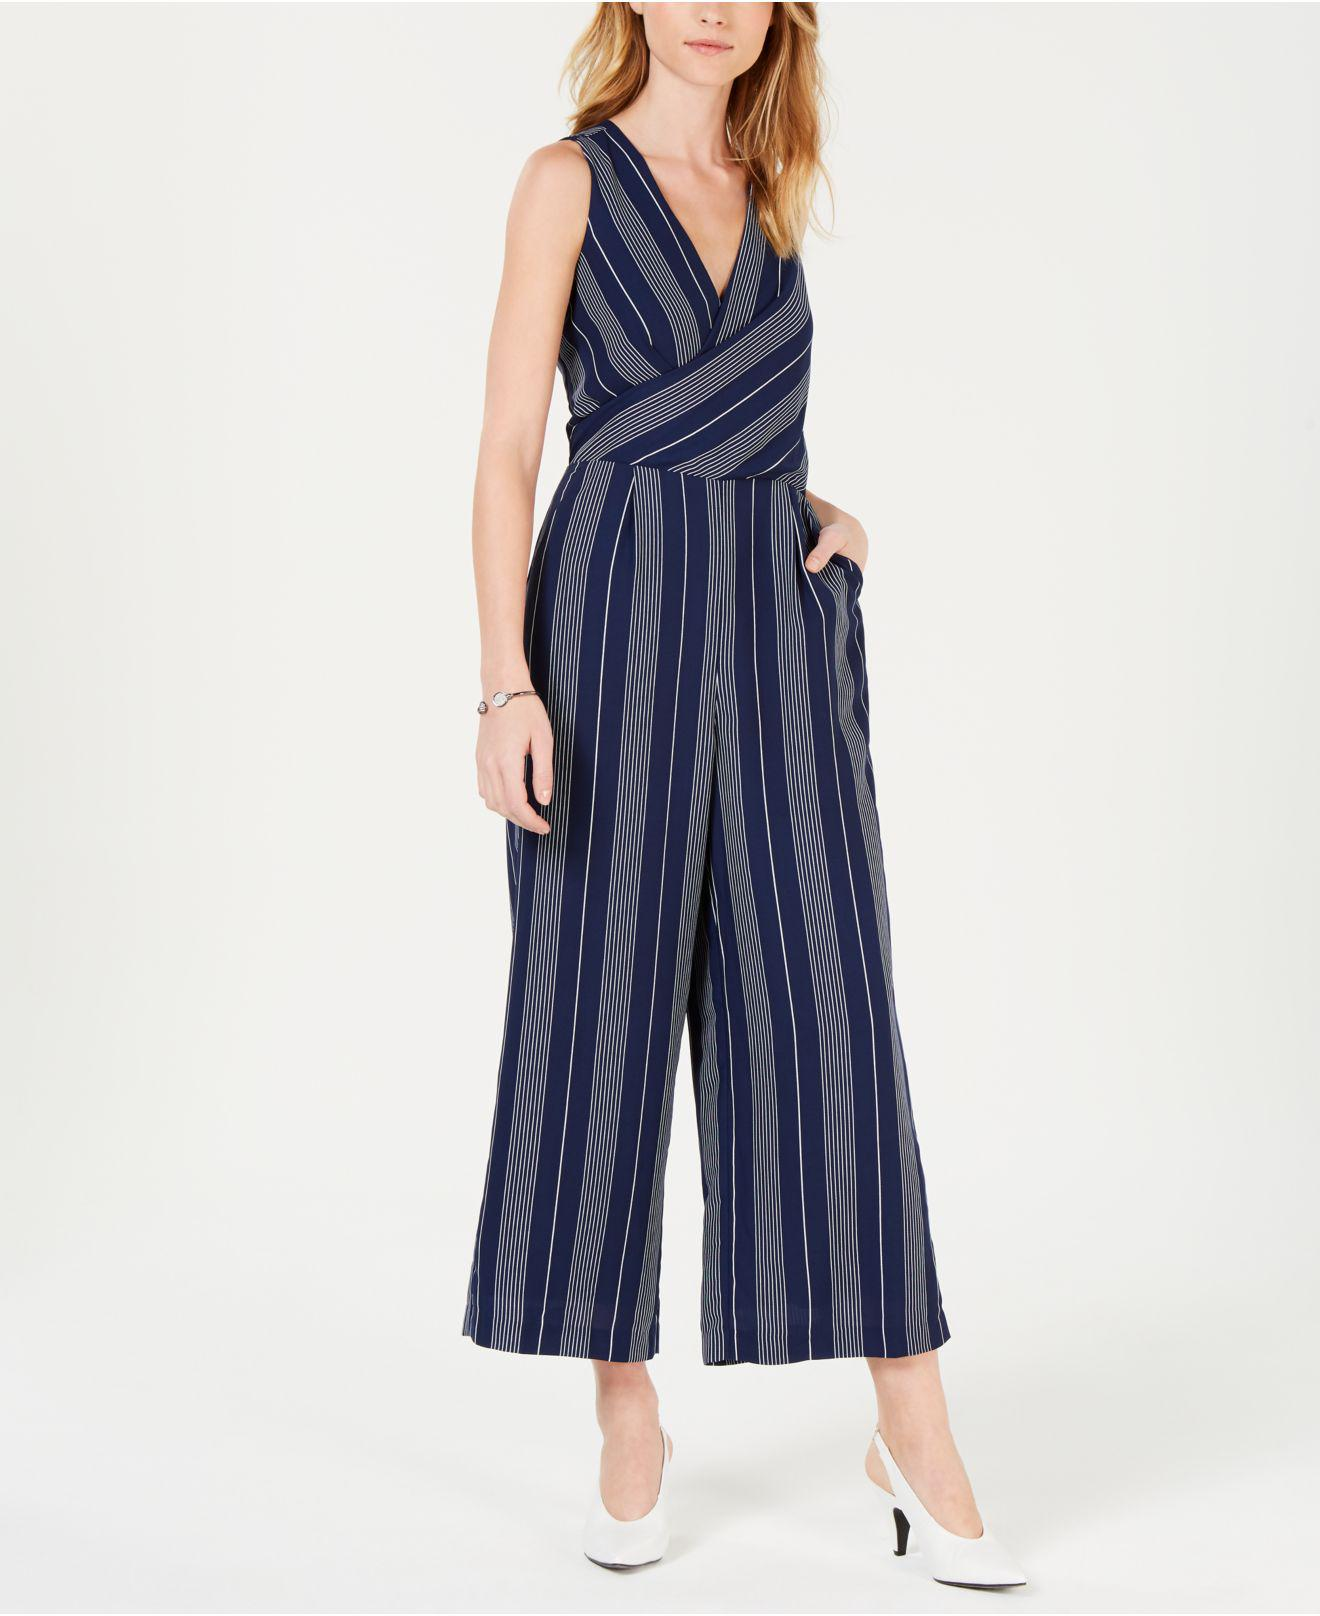 161ccf1c45e4 Maison Jules. Women s Blue Wrap-front Striped Cropped Jumpsuit ...